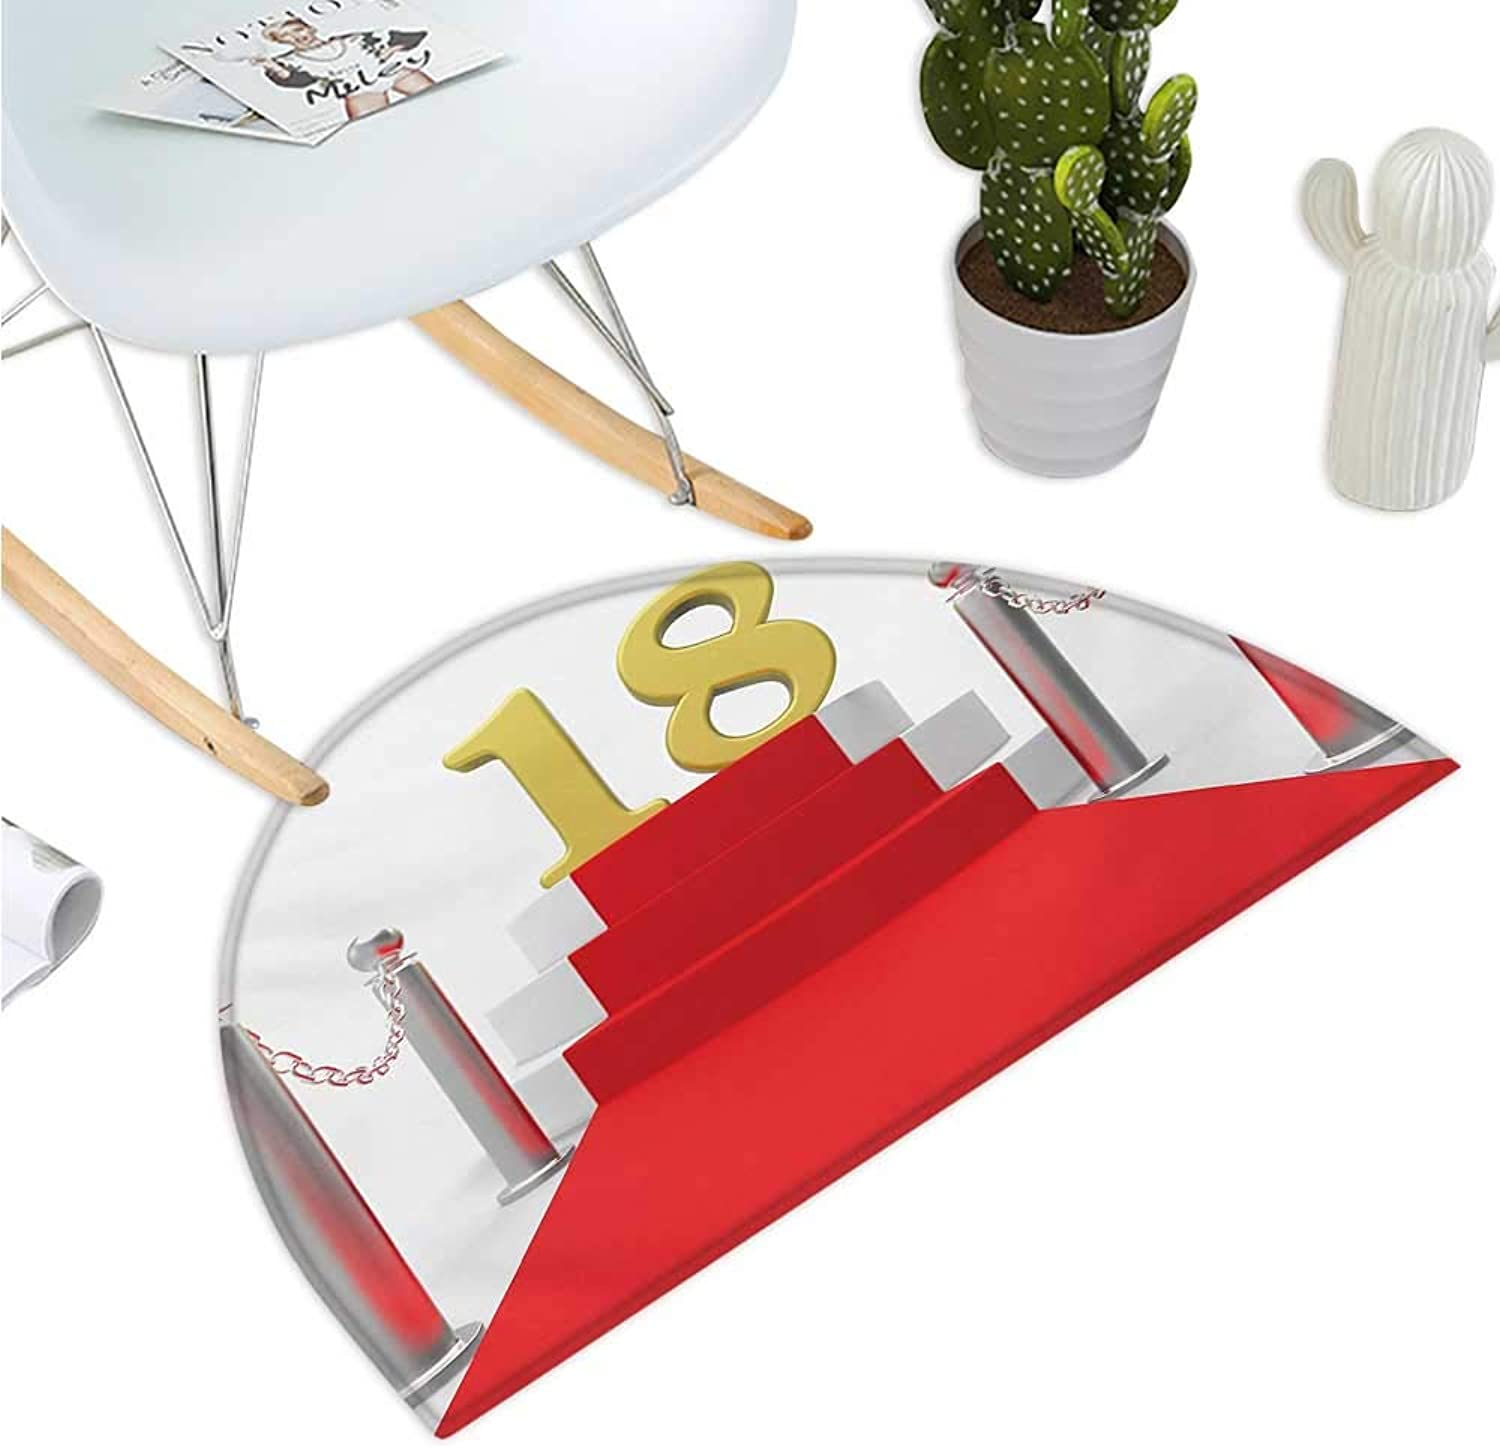 18th Birthday Semicircular Cushion Hollywood Greeting for a 18 Year Old Star Party Red Carpet Image Bathroom Mat H 47.2  xD 70.8  Red Silver and White